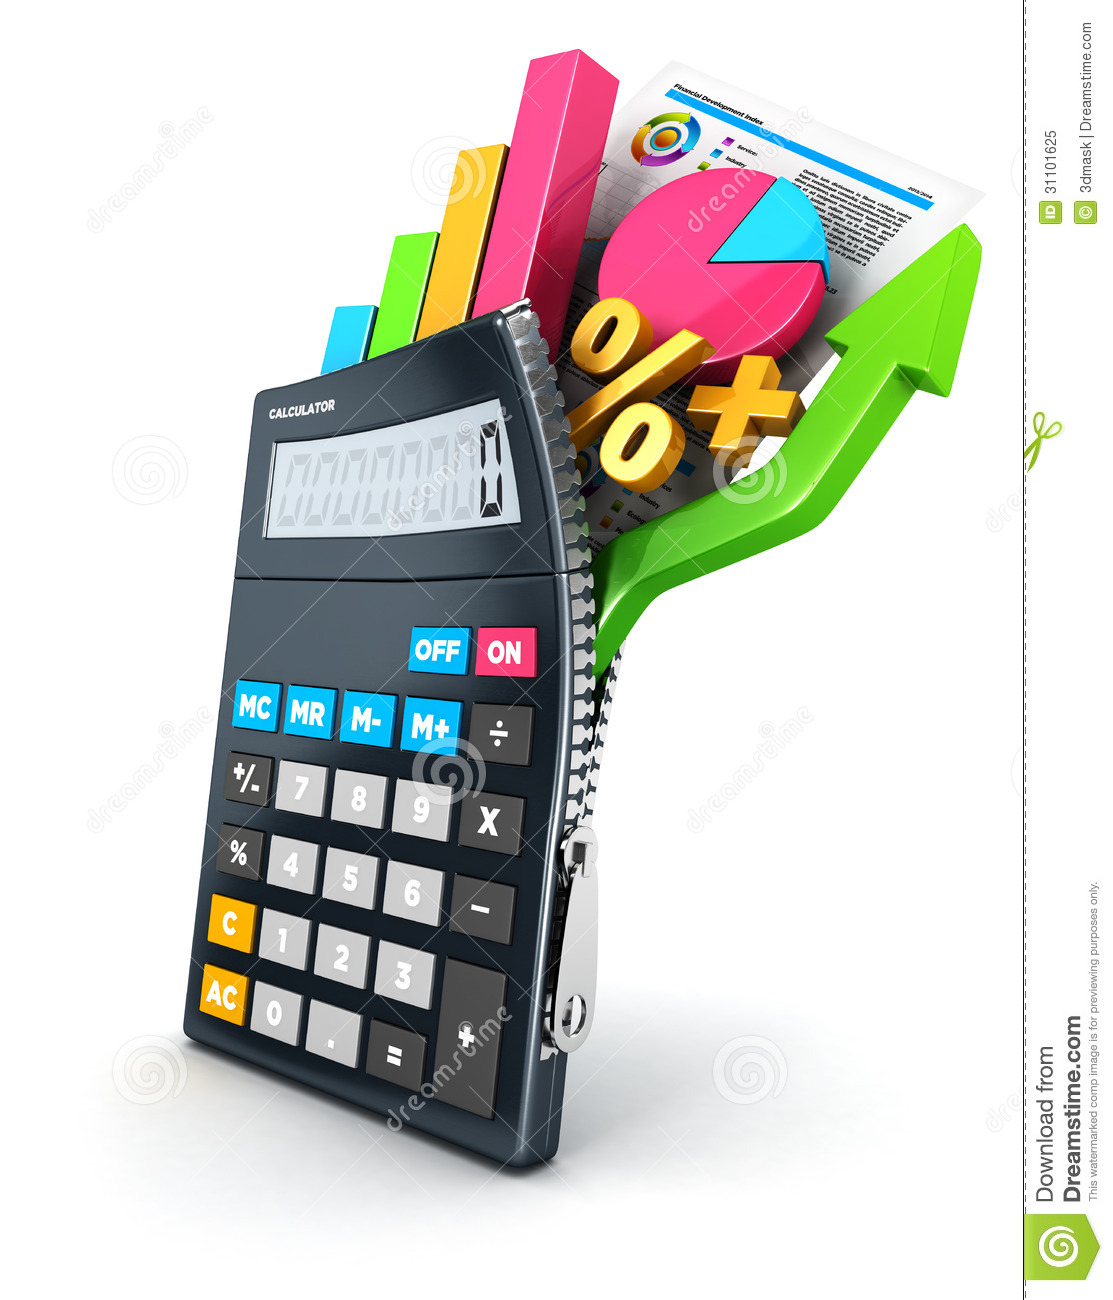 3d Open Calculator Royalty Free Stock Photo - Image: 31101625